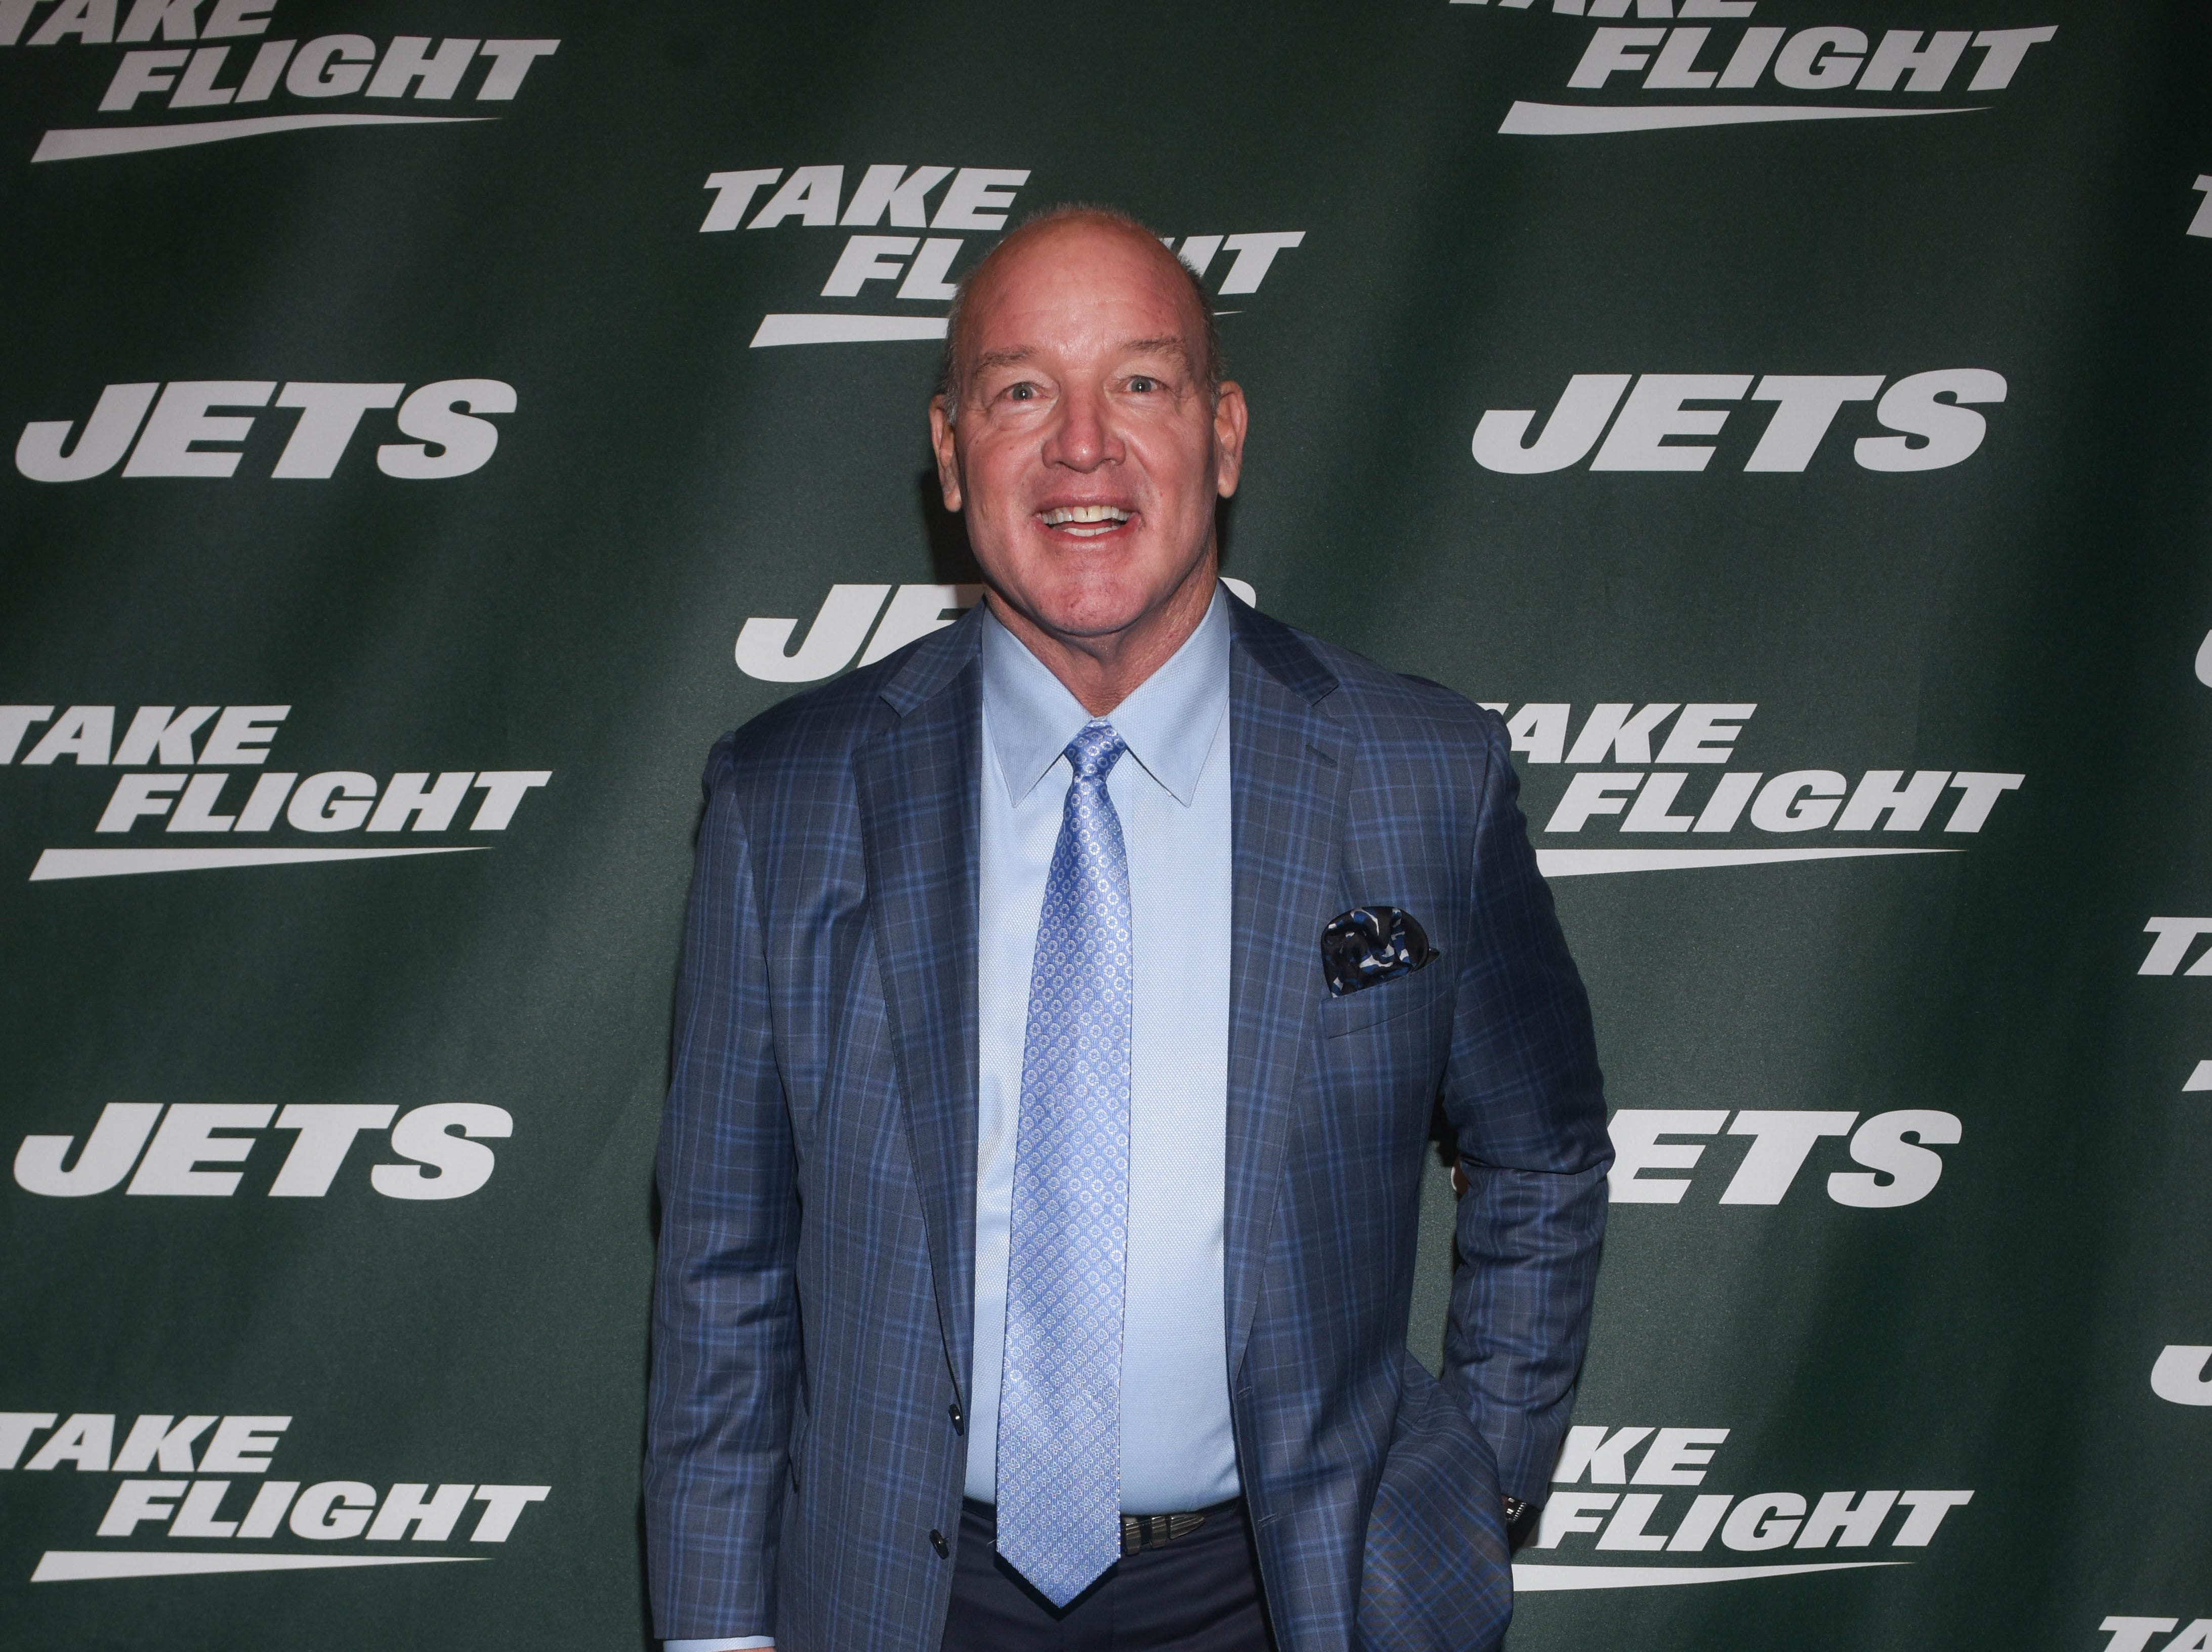 Marty Lyons (NY Jets). The NY Jets unveiled their new football uniforms with an event hosted by JB Smoove at Gotham Hall in New York. 04/05/2019